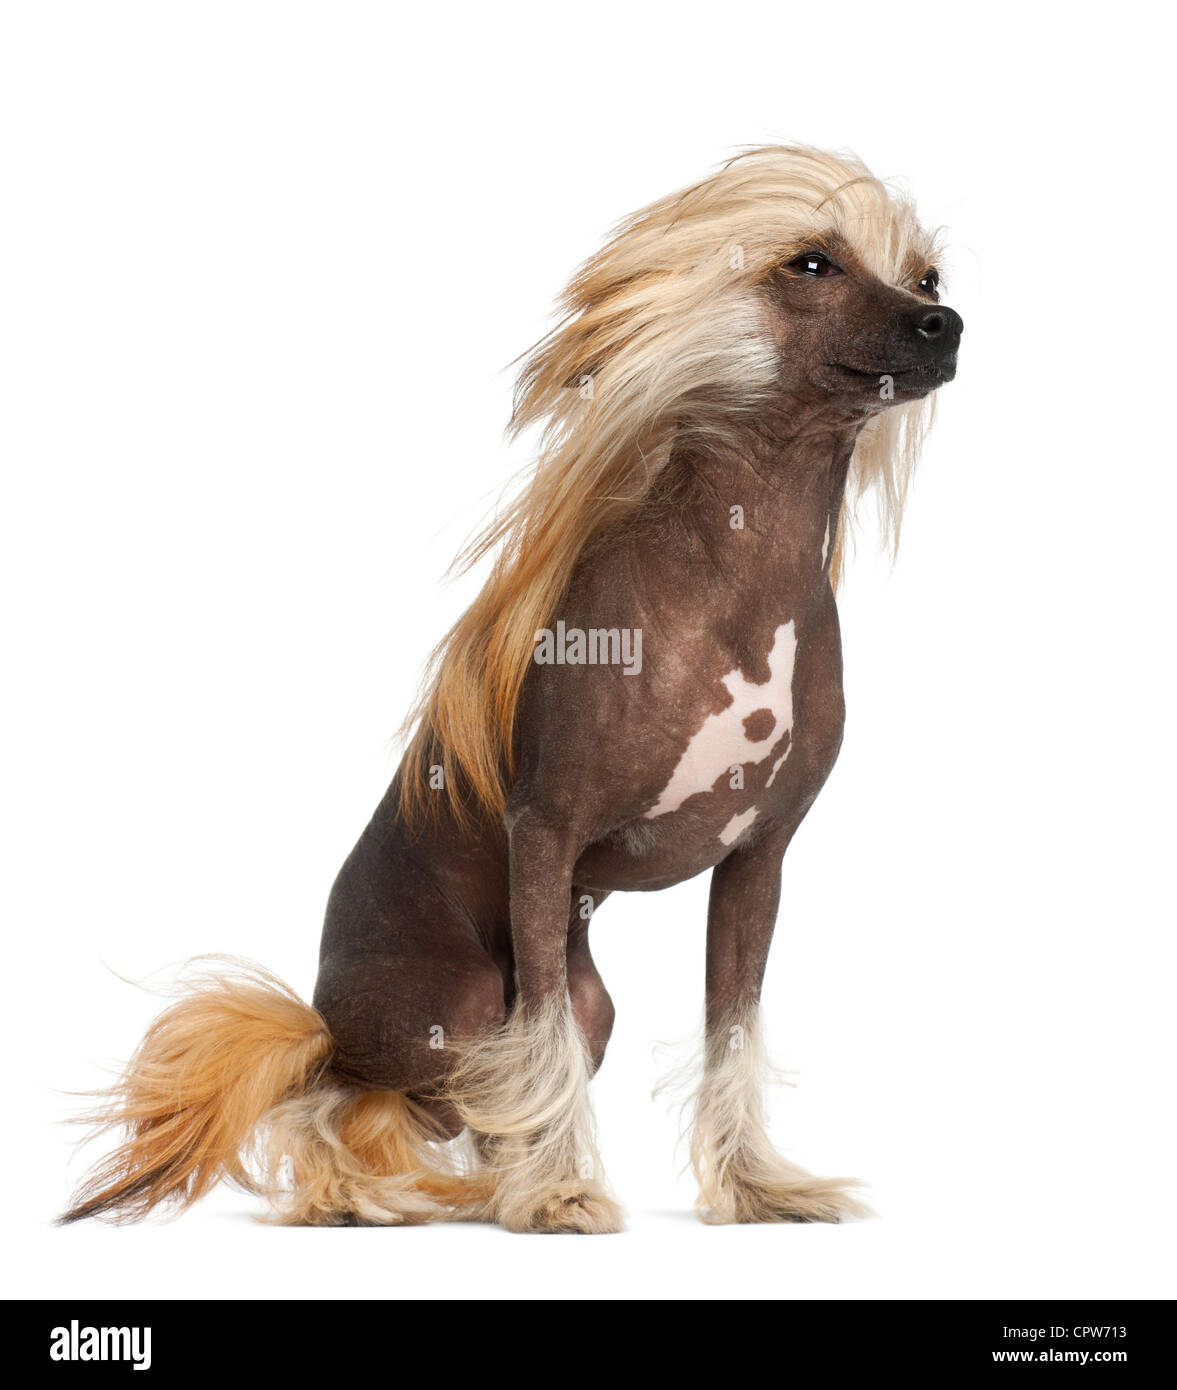 Chinese Crested Dog, 9 months old, sitting against white background - Stock Image